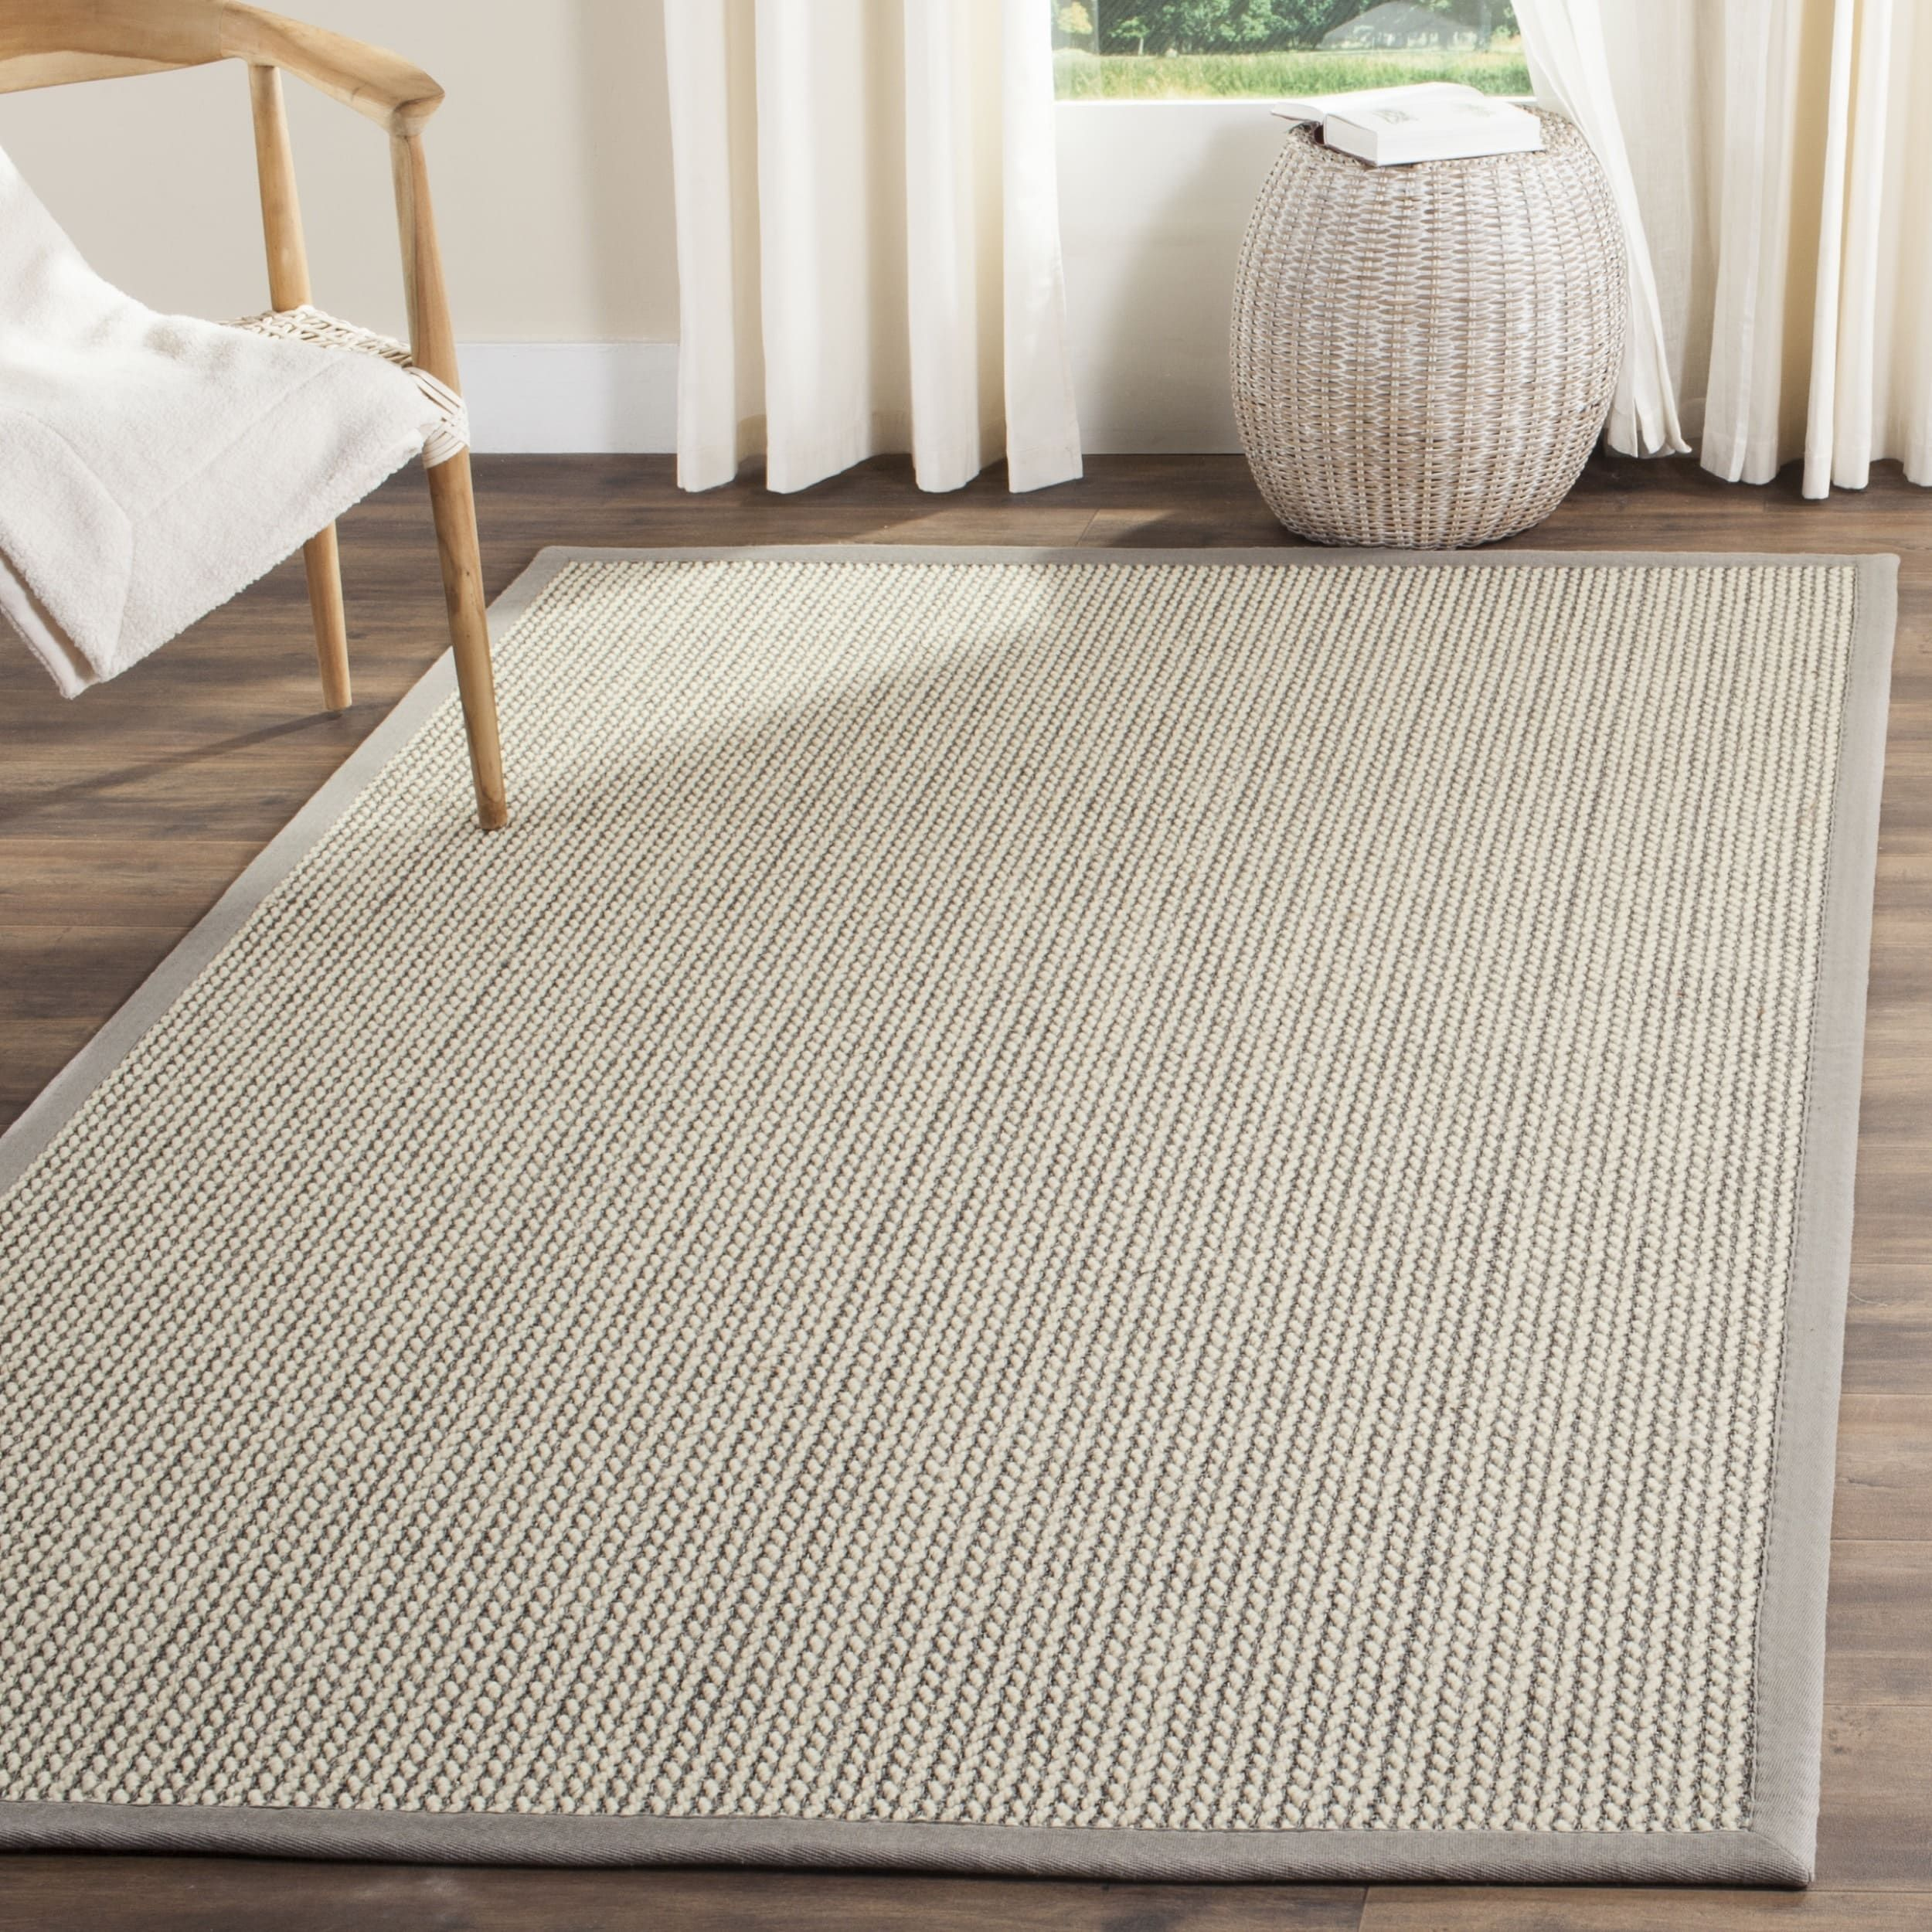 rug chunky hargrove house of jute rugs img perfect shed the all designs do review